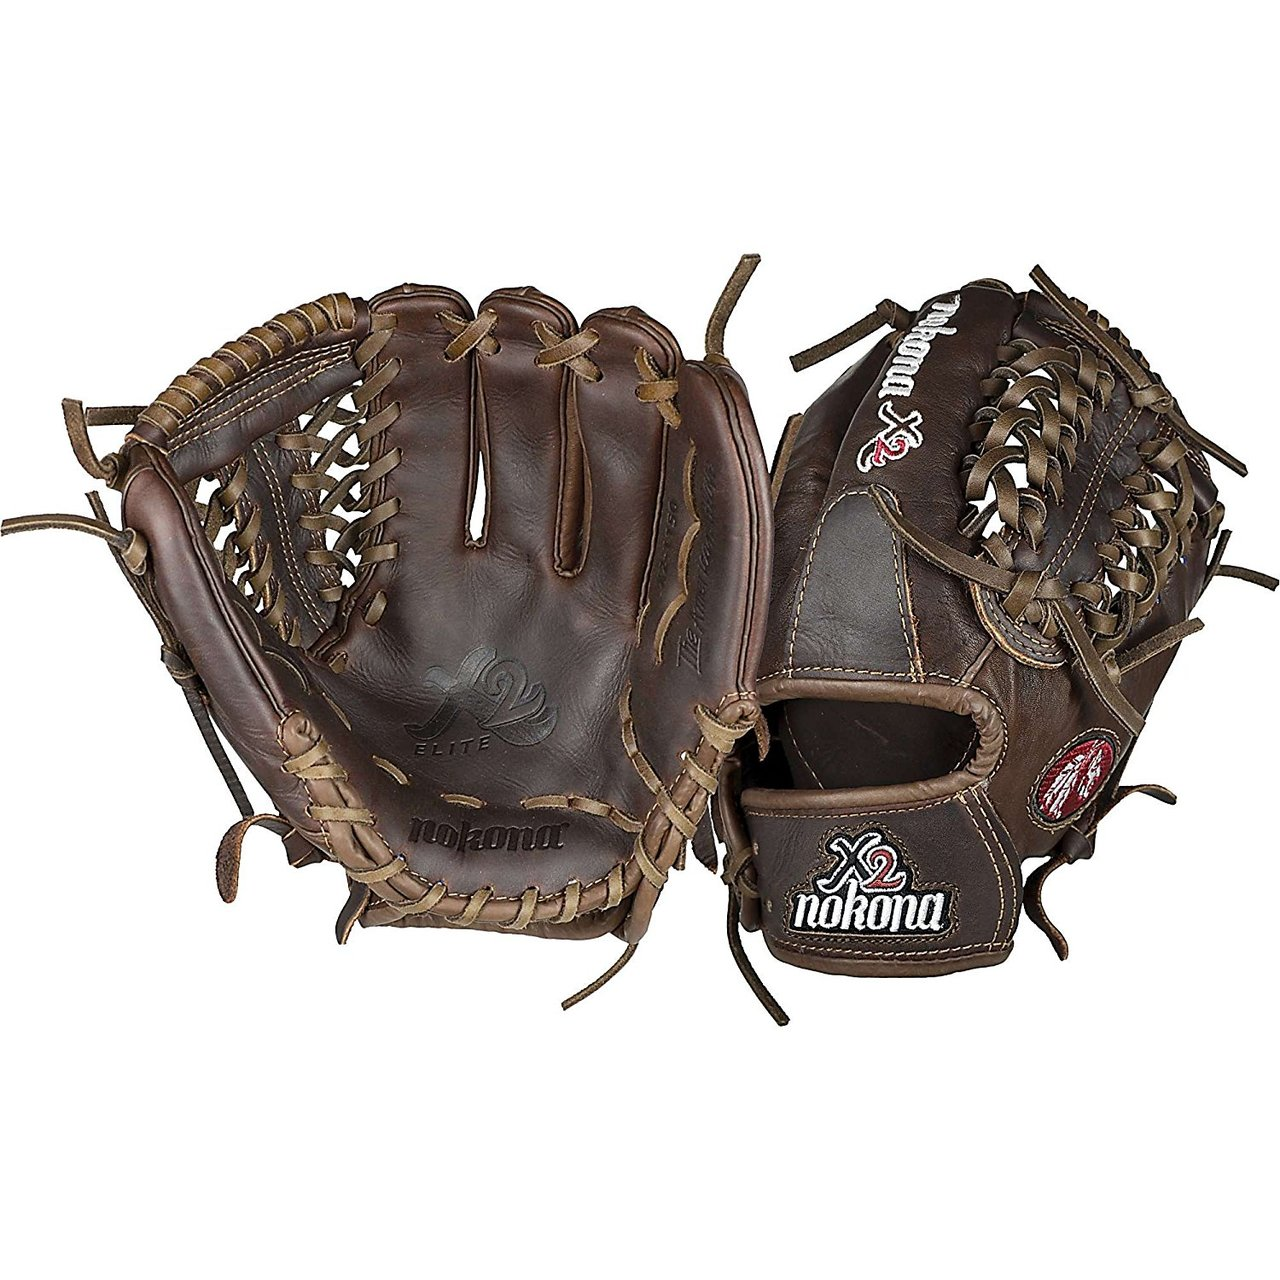 nokona-x2-1150m-x2-elite-11-5-inch-baseball-glove-right-handed-throw X2-1150M-Right Handed Throw Nokona 808808888680 Nokona X2-1150M an X2 Elite baseball glove Nokonas highest performance ready-for-play